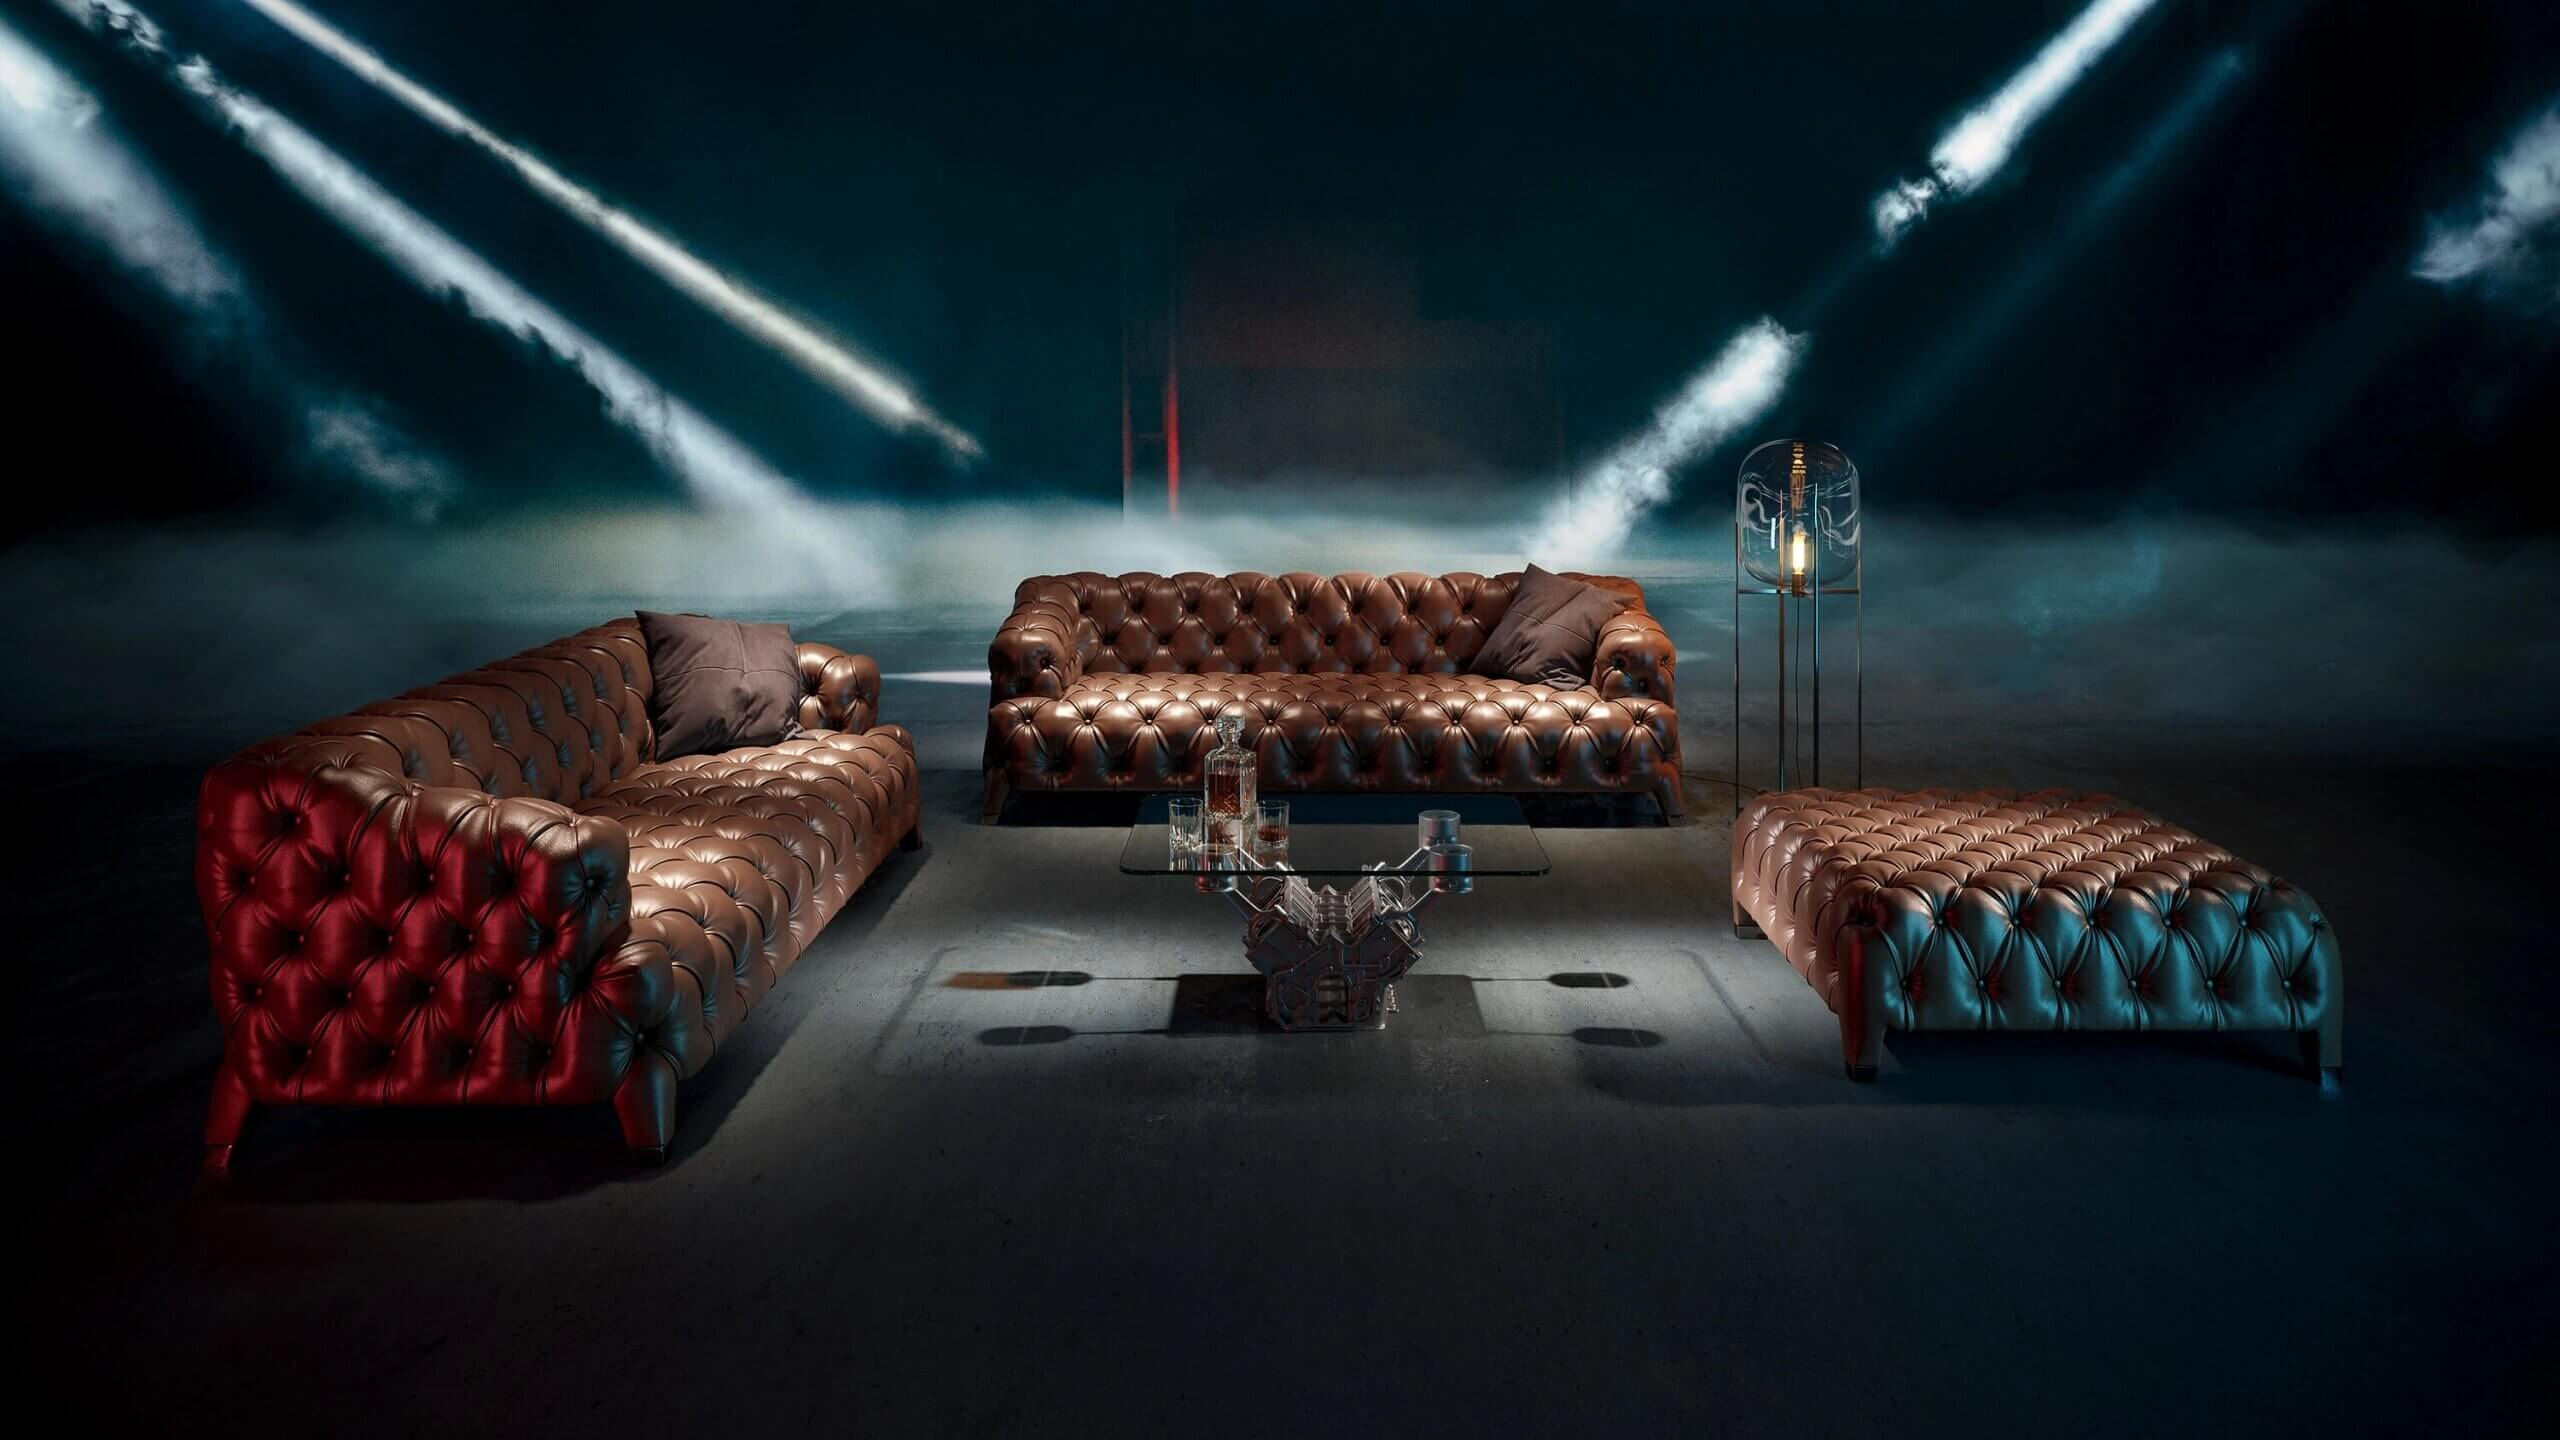 A 3D Render of Leather Sofas